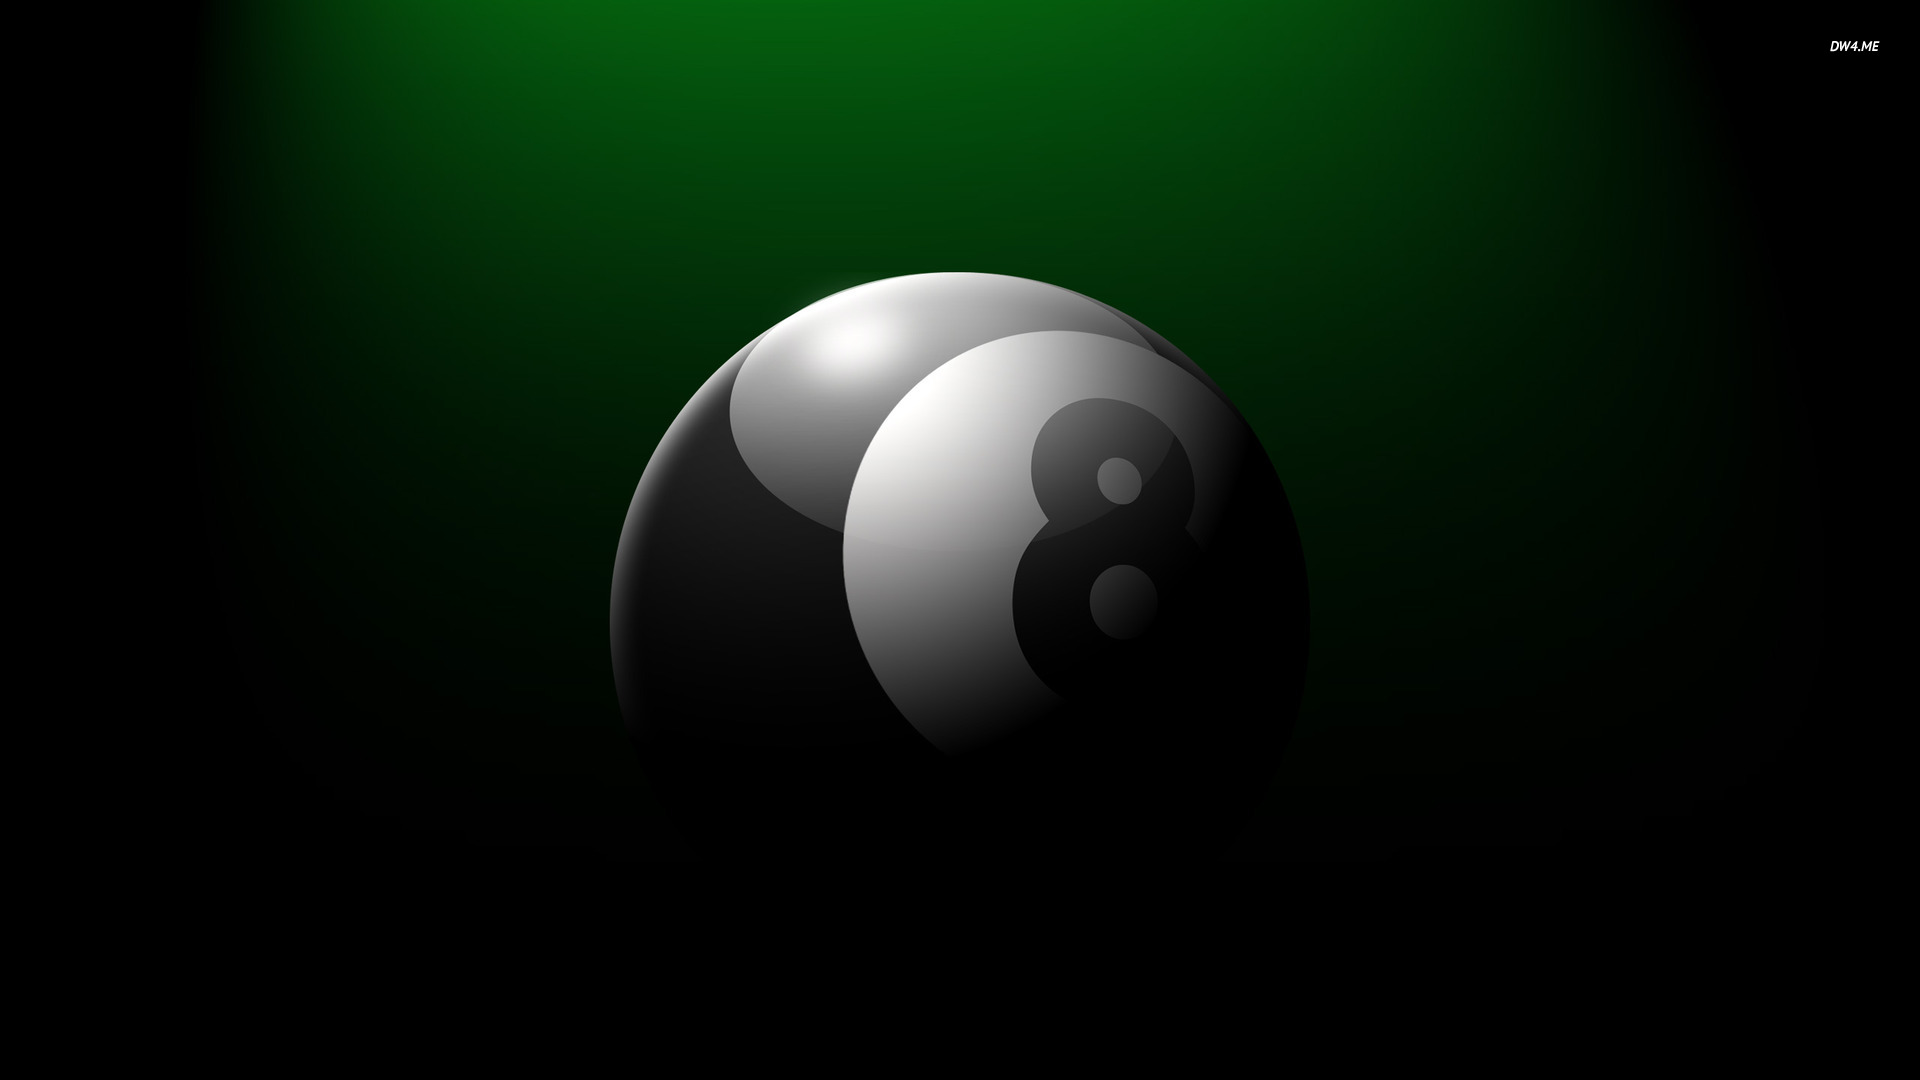 8 ball pool wallpaper - photo #2